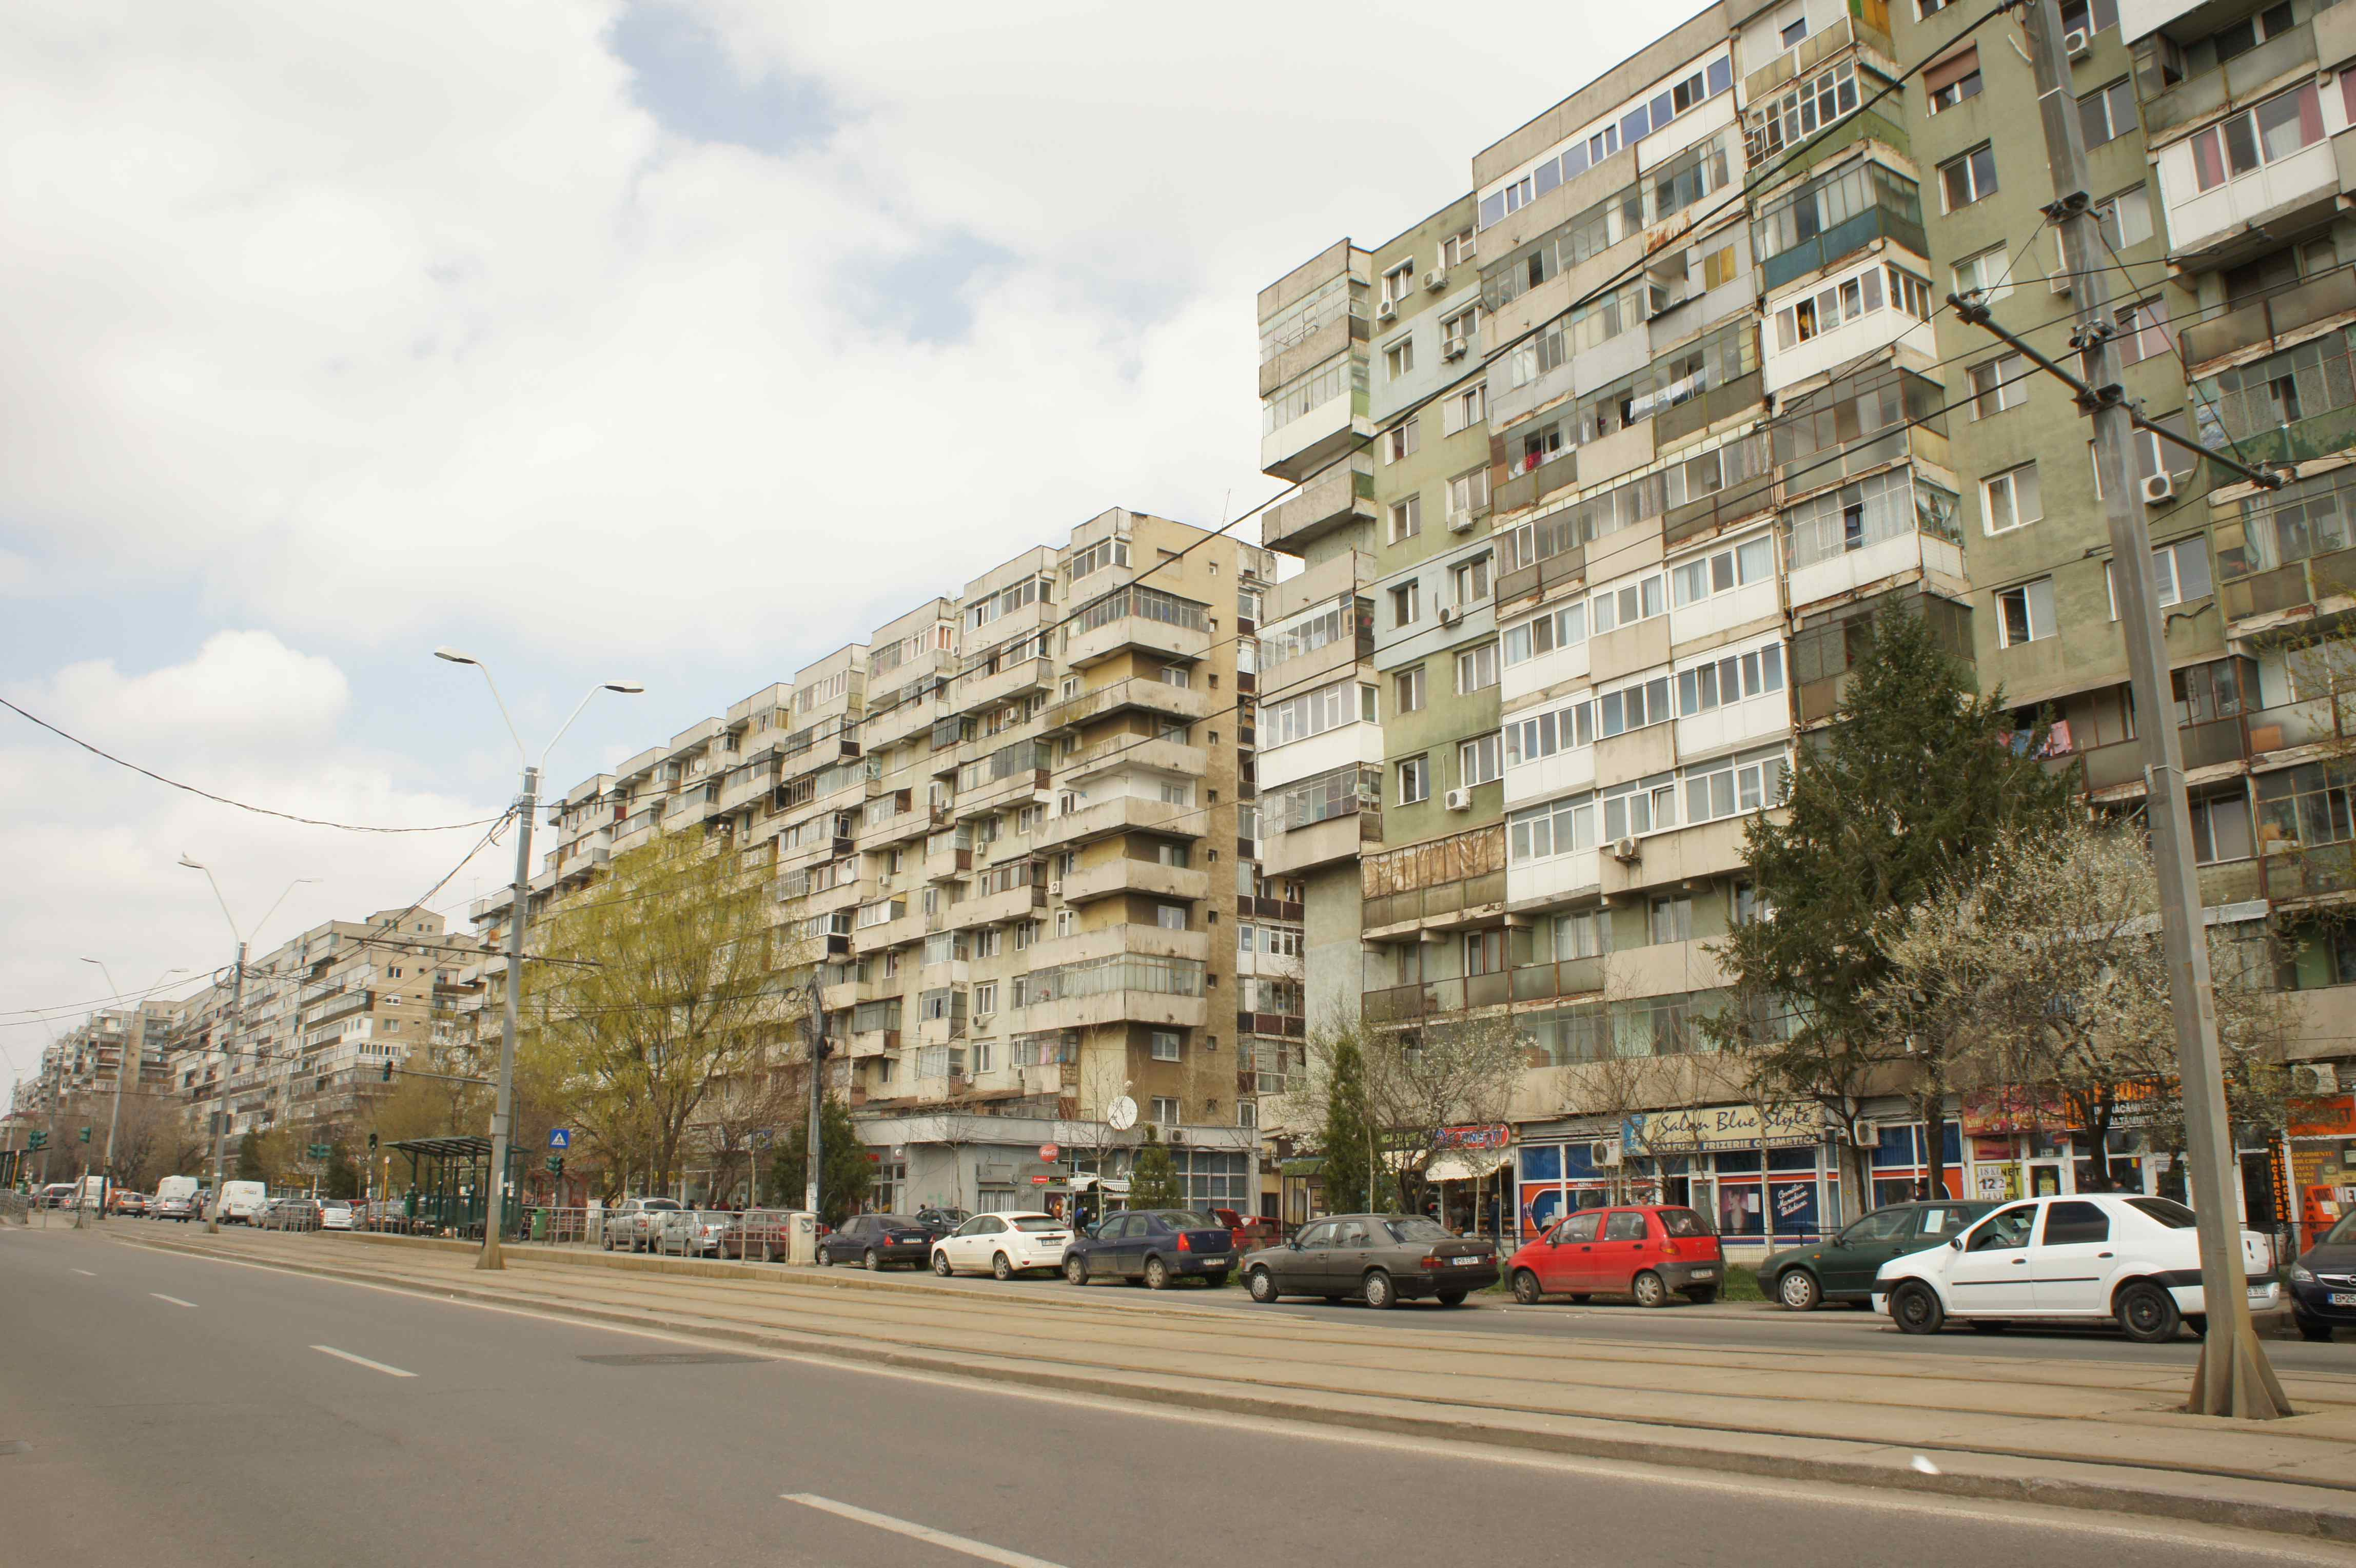 Apartment blocks in need of renovation in Bucharests suburbs.